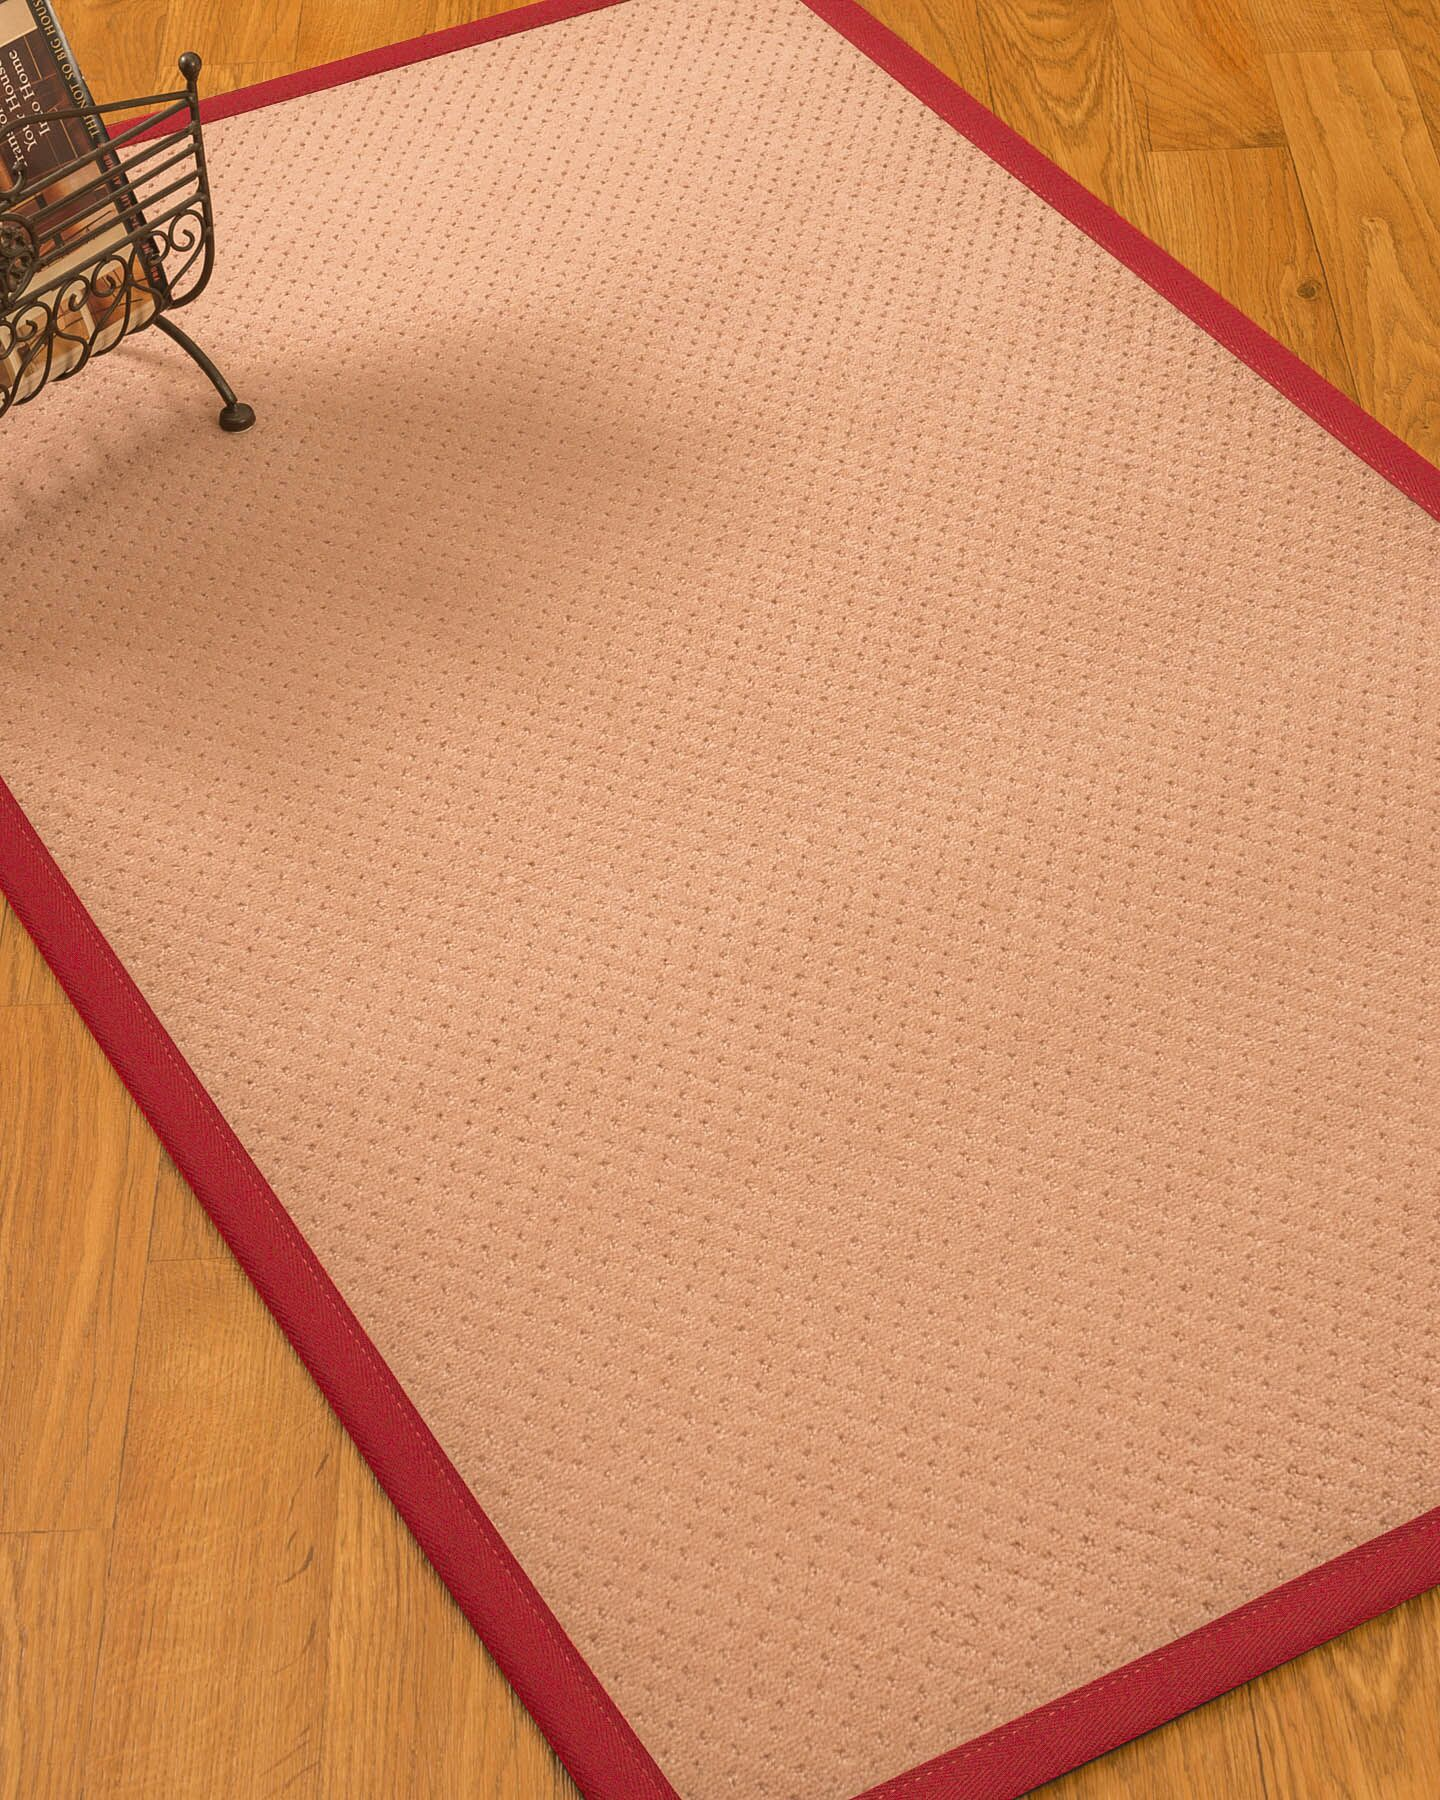 Farnham Border Hand-Woven Wool Pink/Red Area Rug Rug Size: Rectangle 12' x 15', Rug Pad Included: Yes